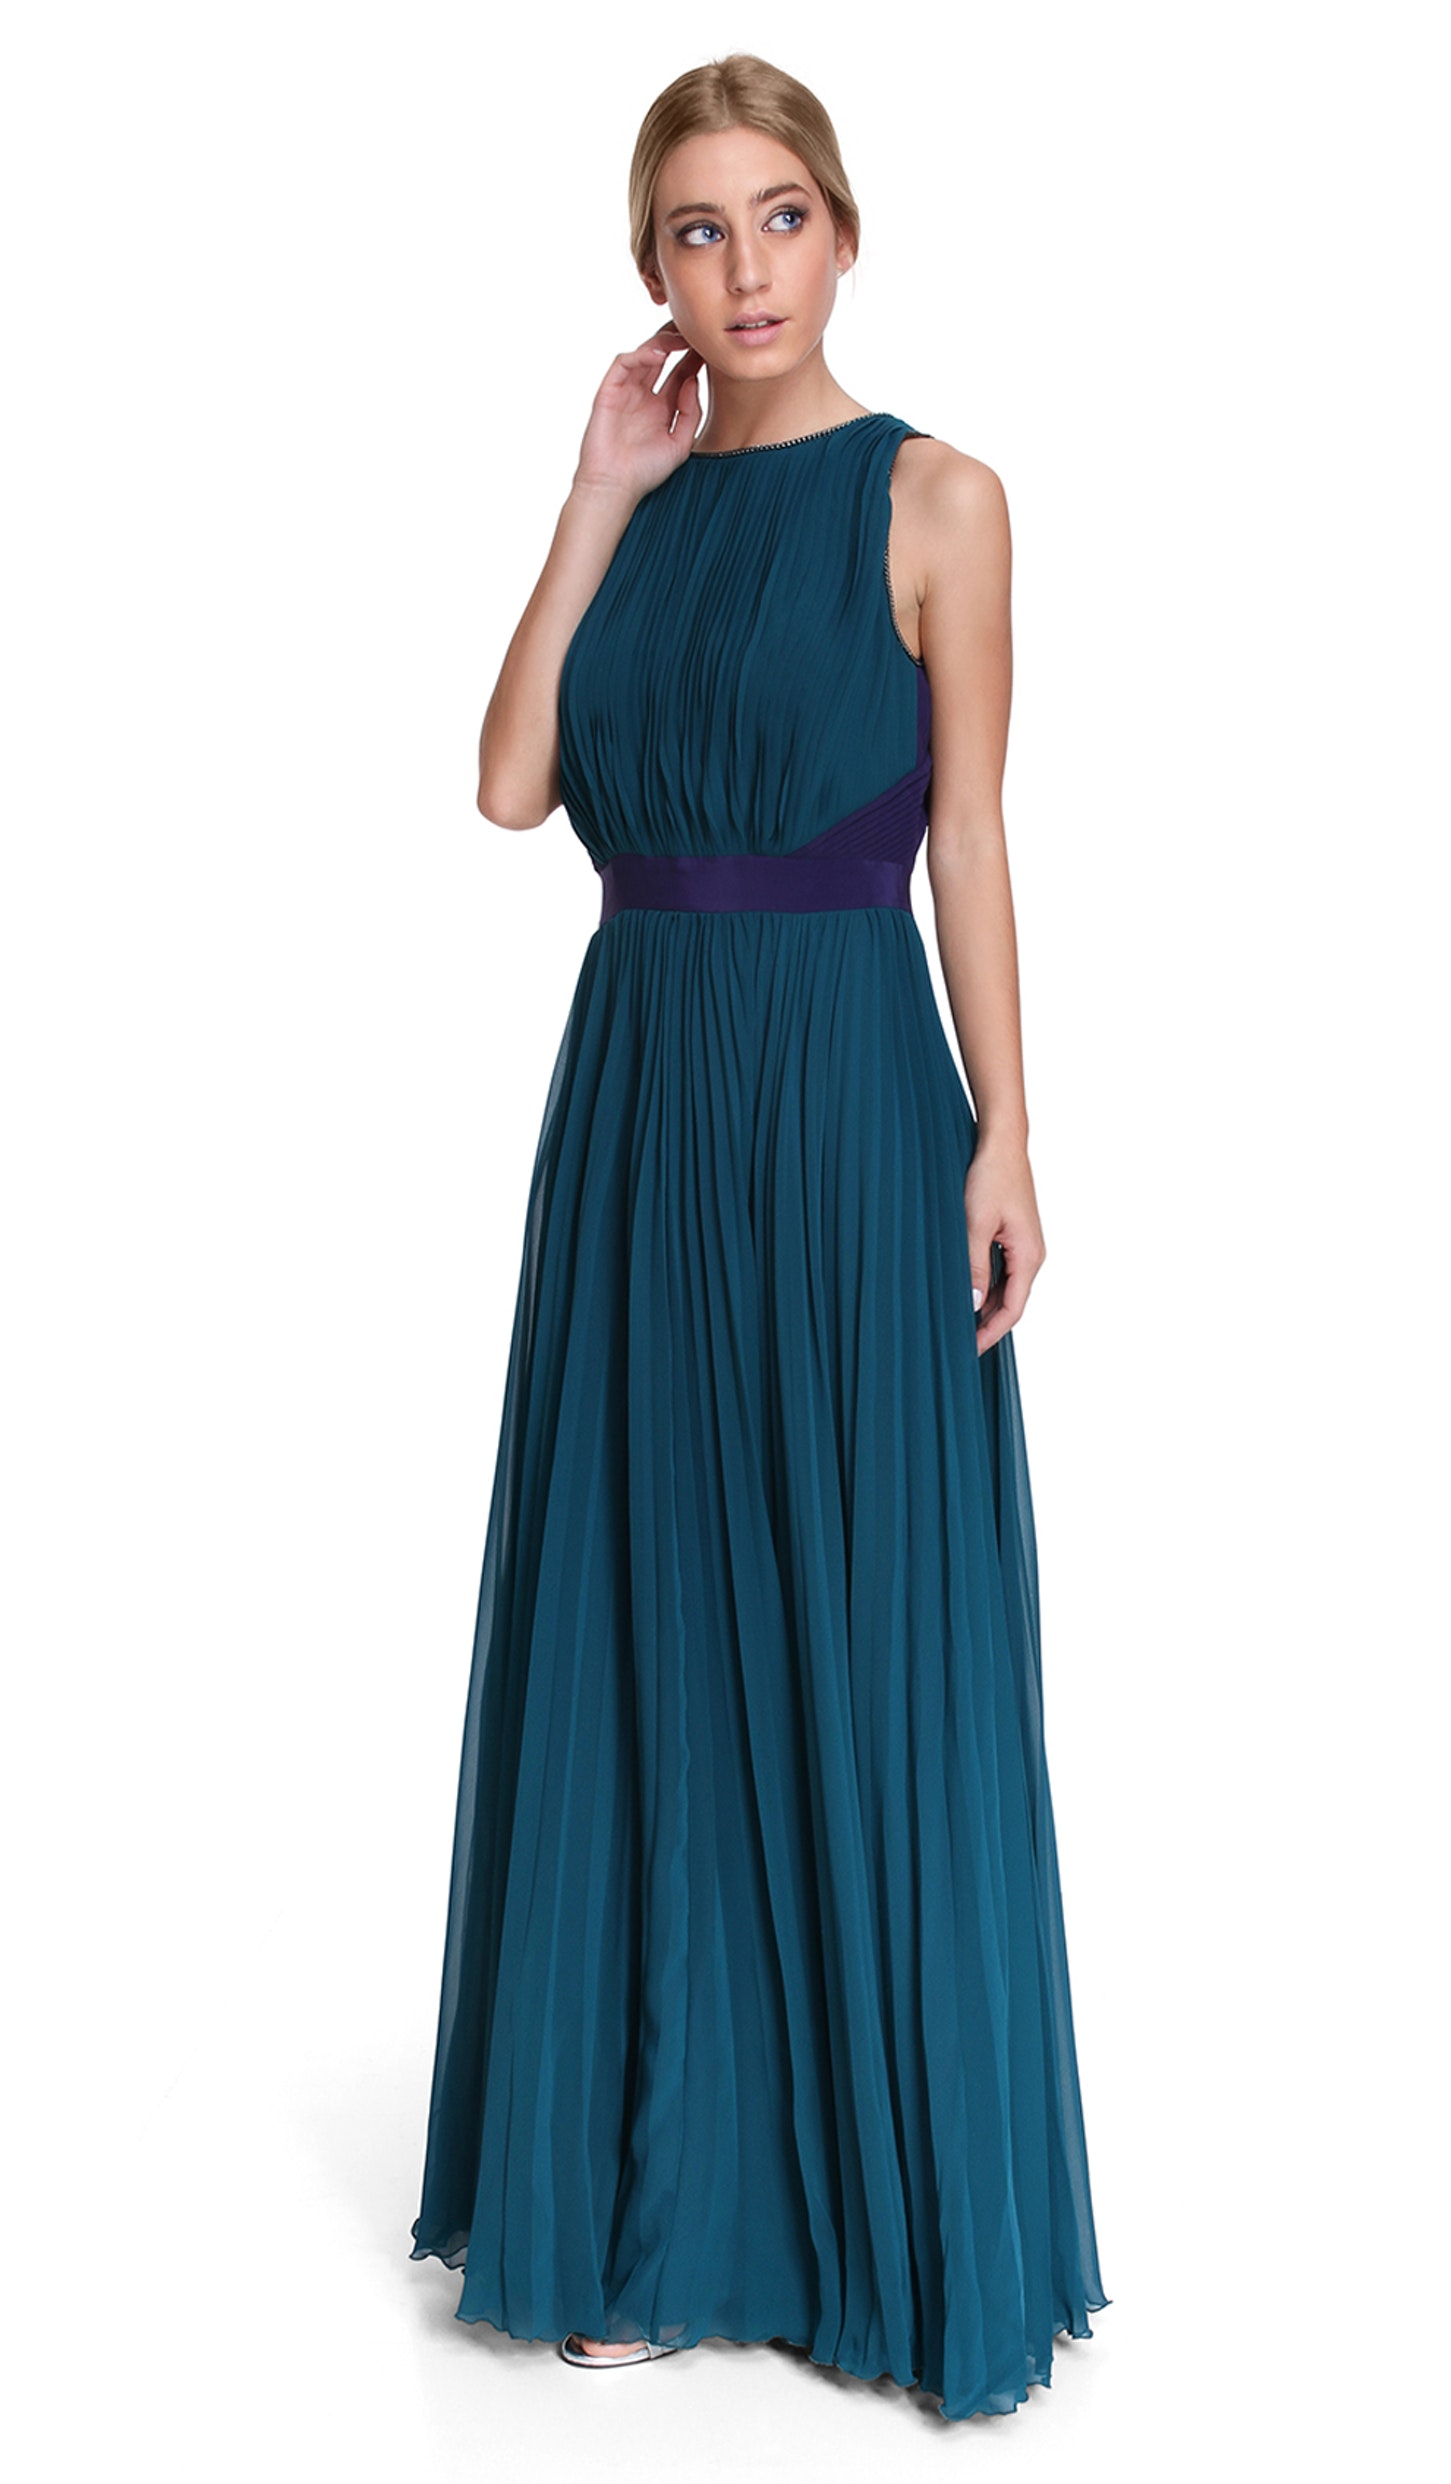 Purple and Green Gown - HALSTON HERITAGE — Chic by Choice Sale